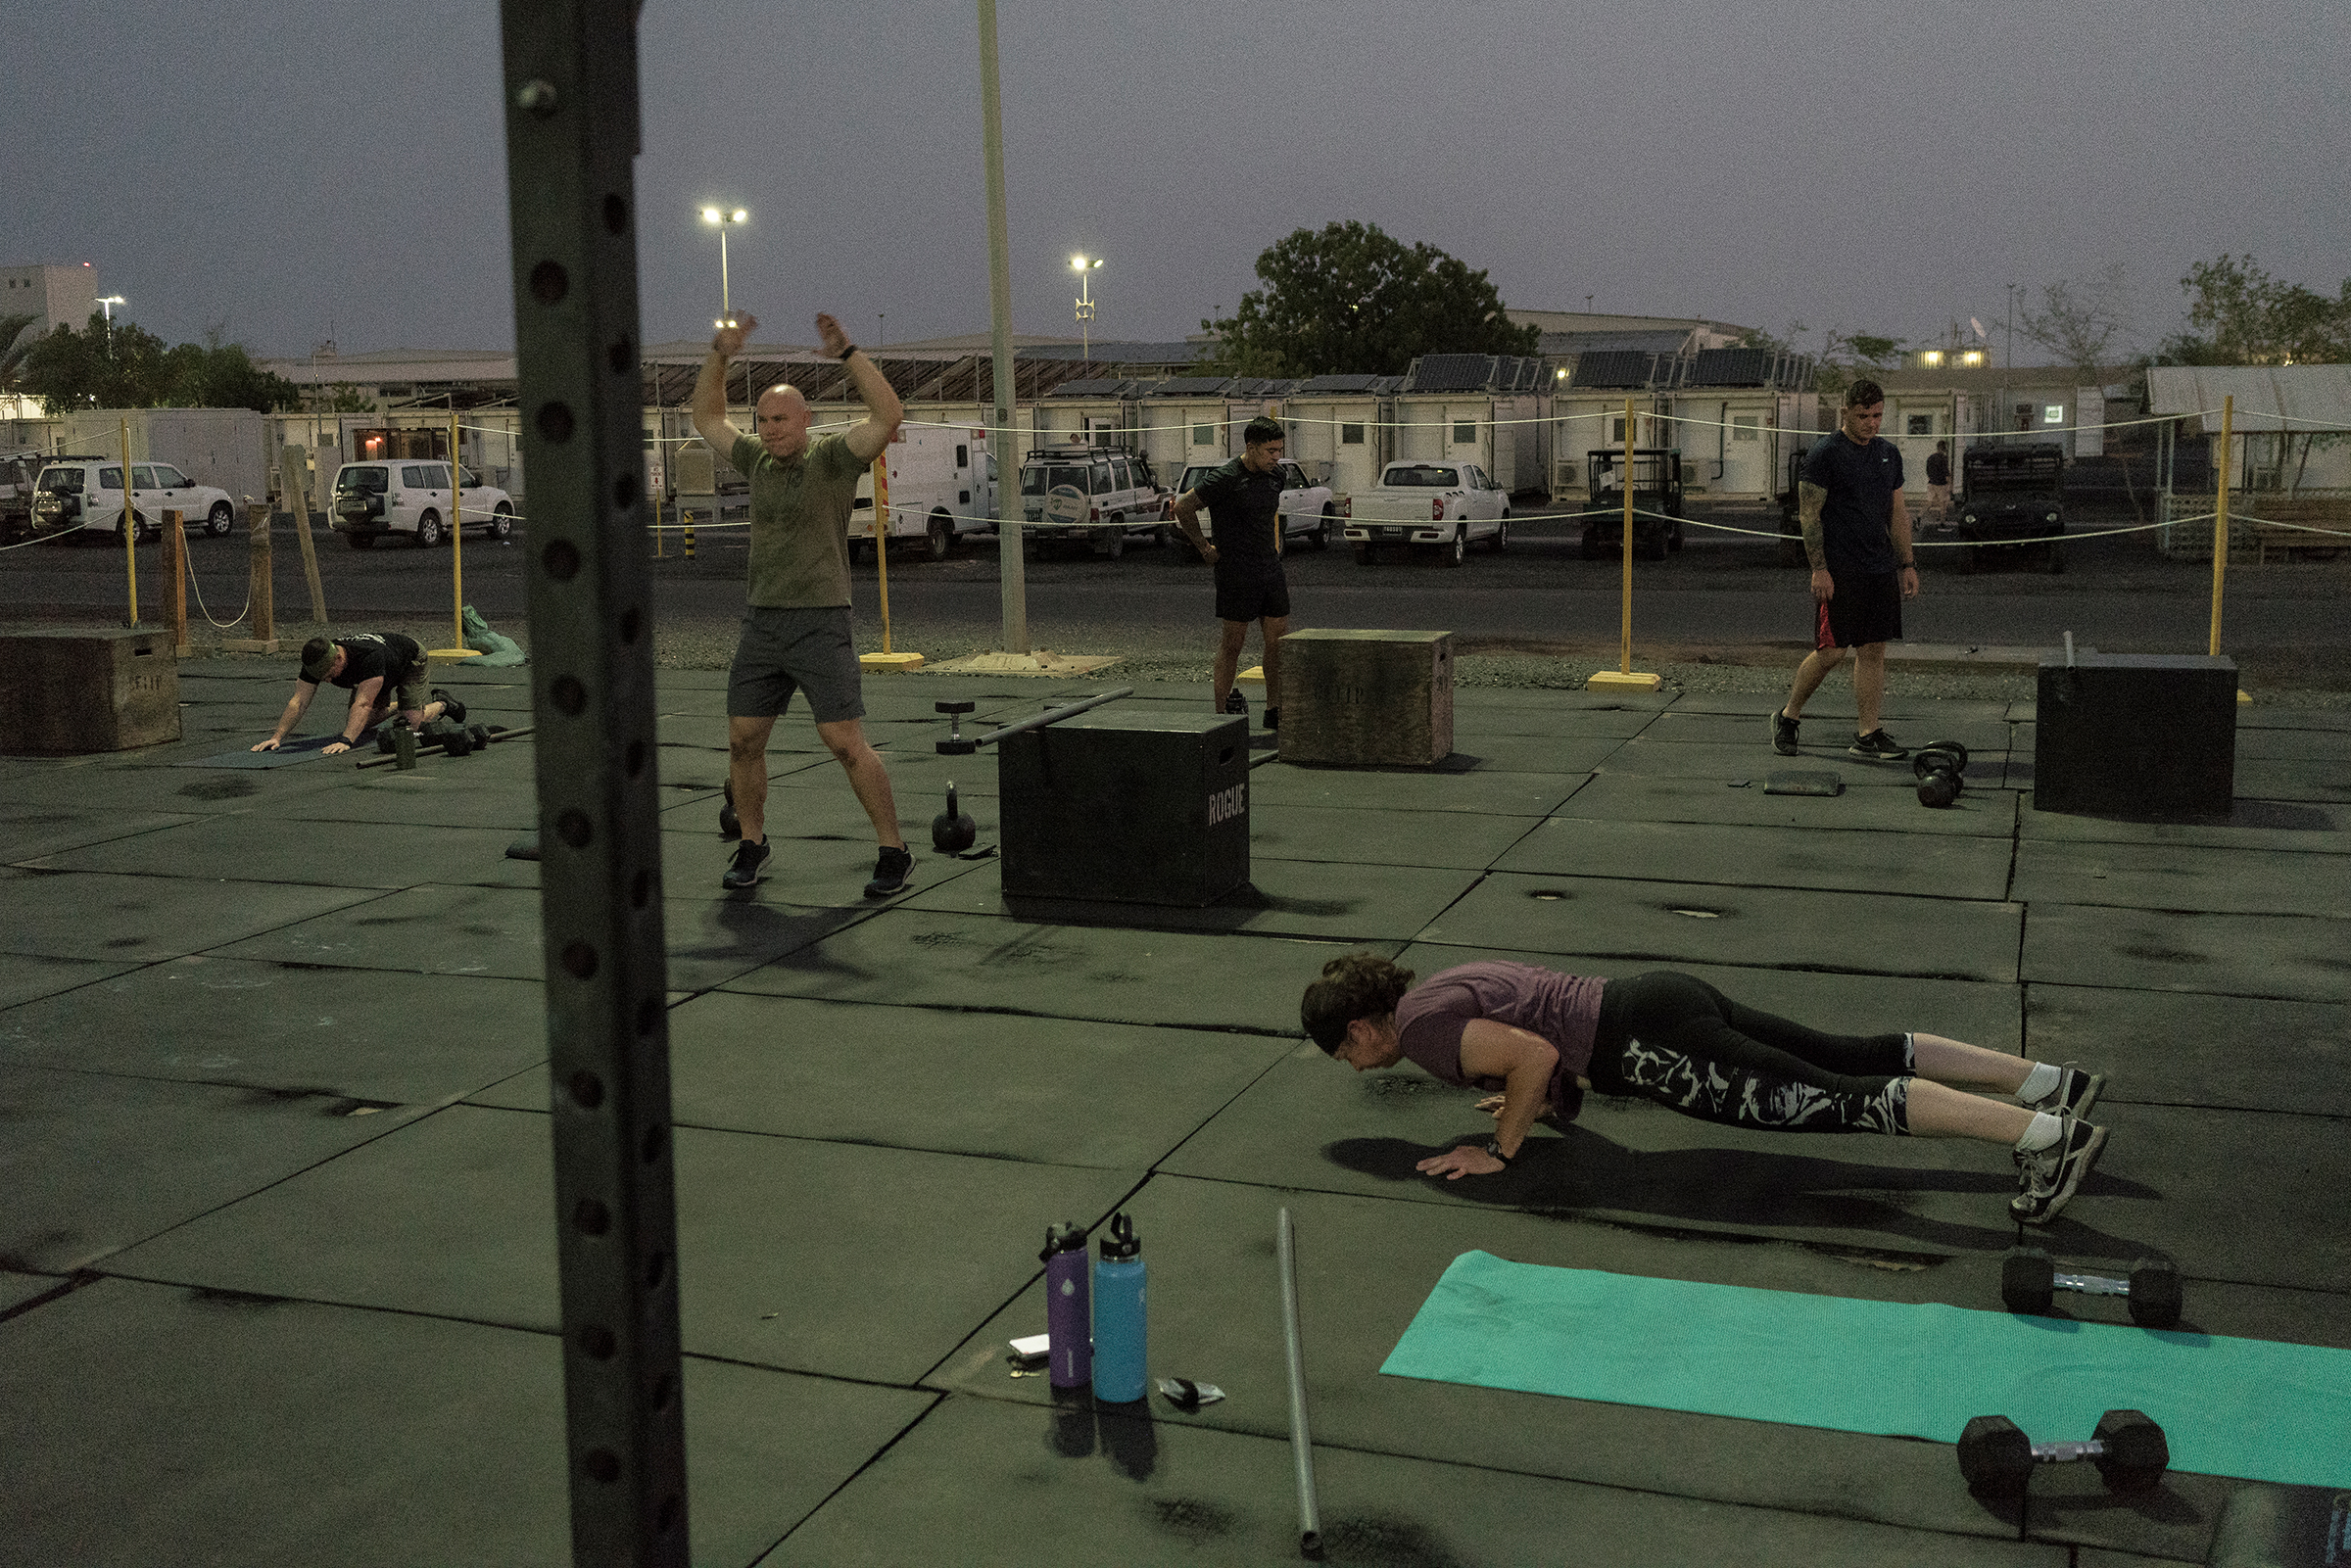 A morning exercise session at the base.